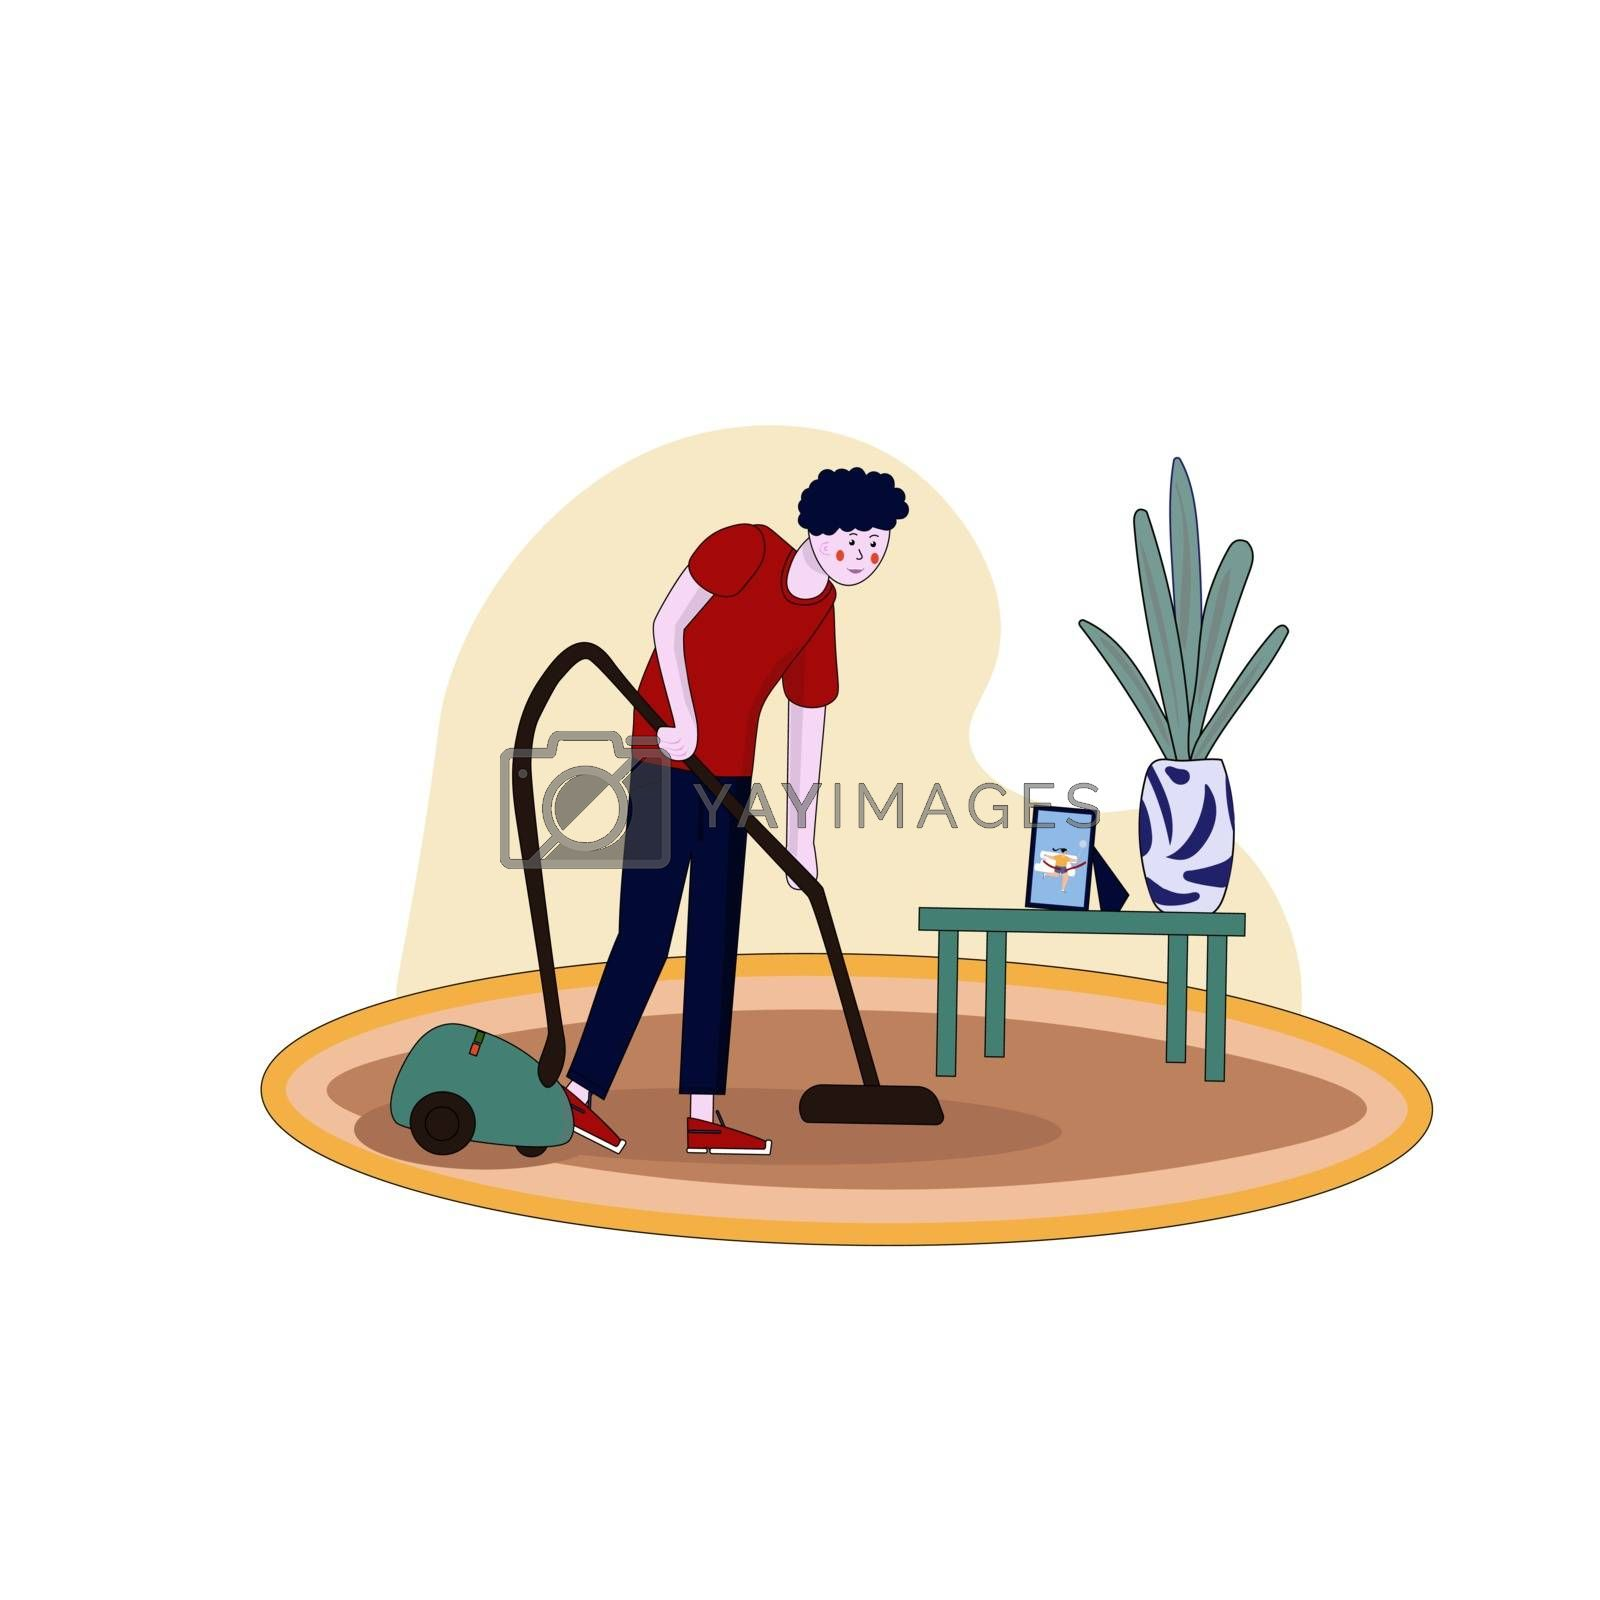 The man is vacuuming the carpet. Vector illustration in hand-drawn cartoon style